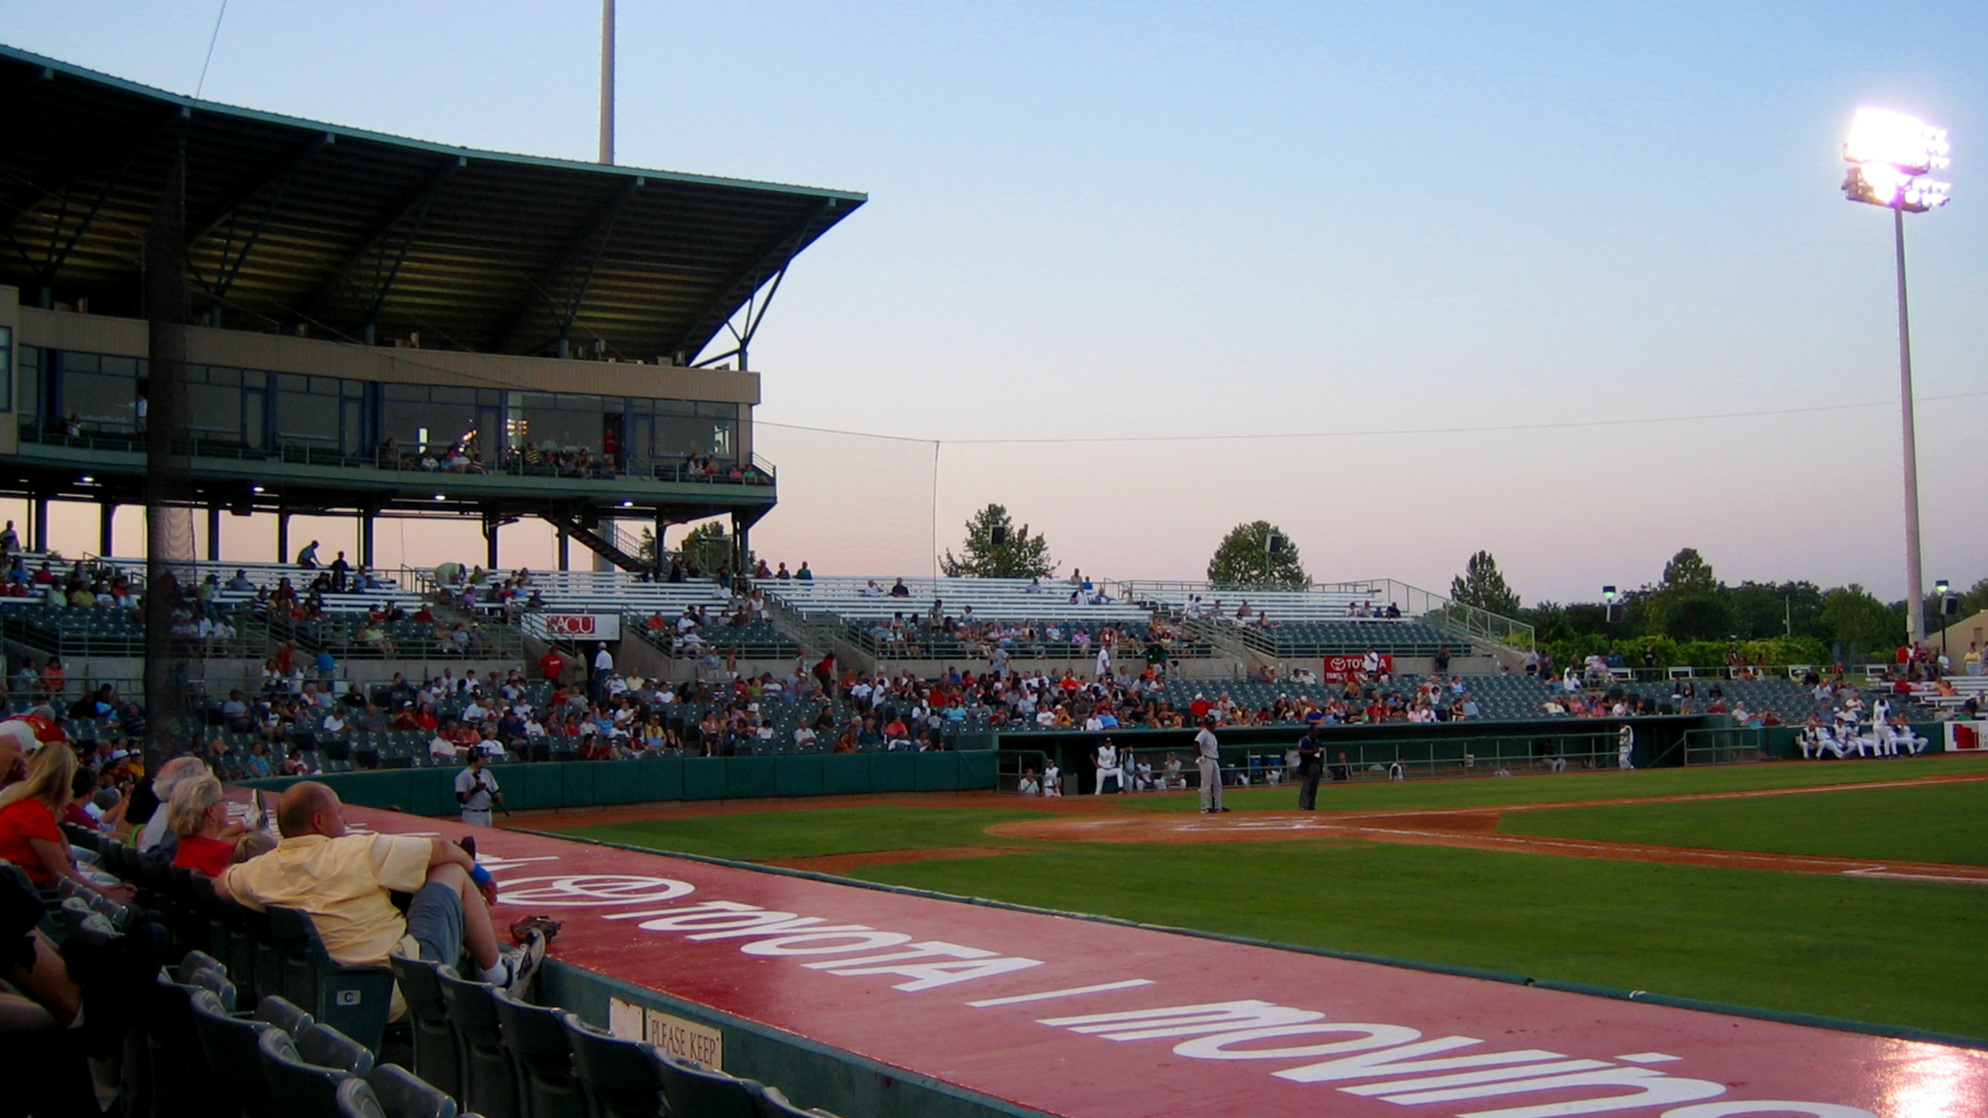 Nelson Wolffe Stadium, current home of the San Antonio Missions in 2006)